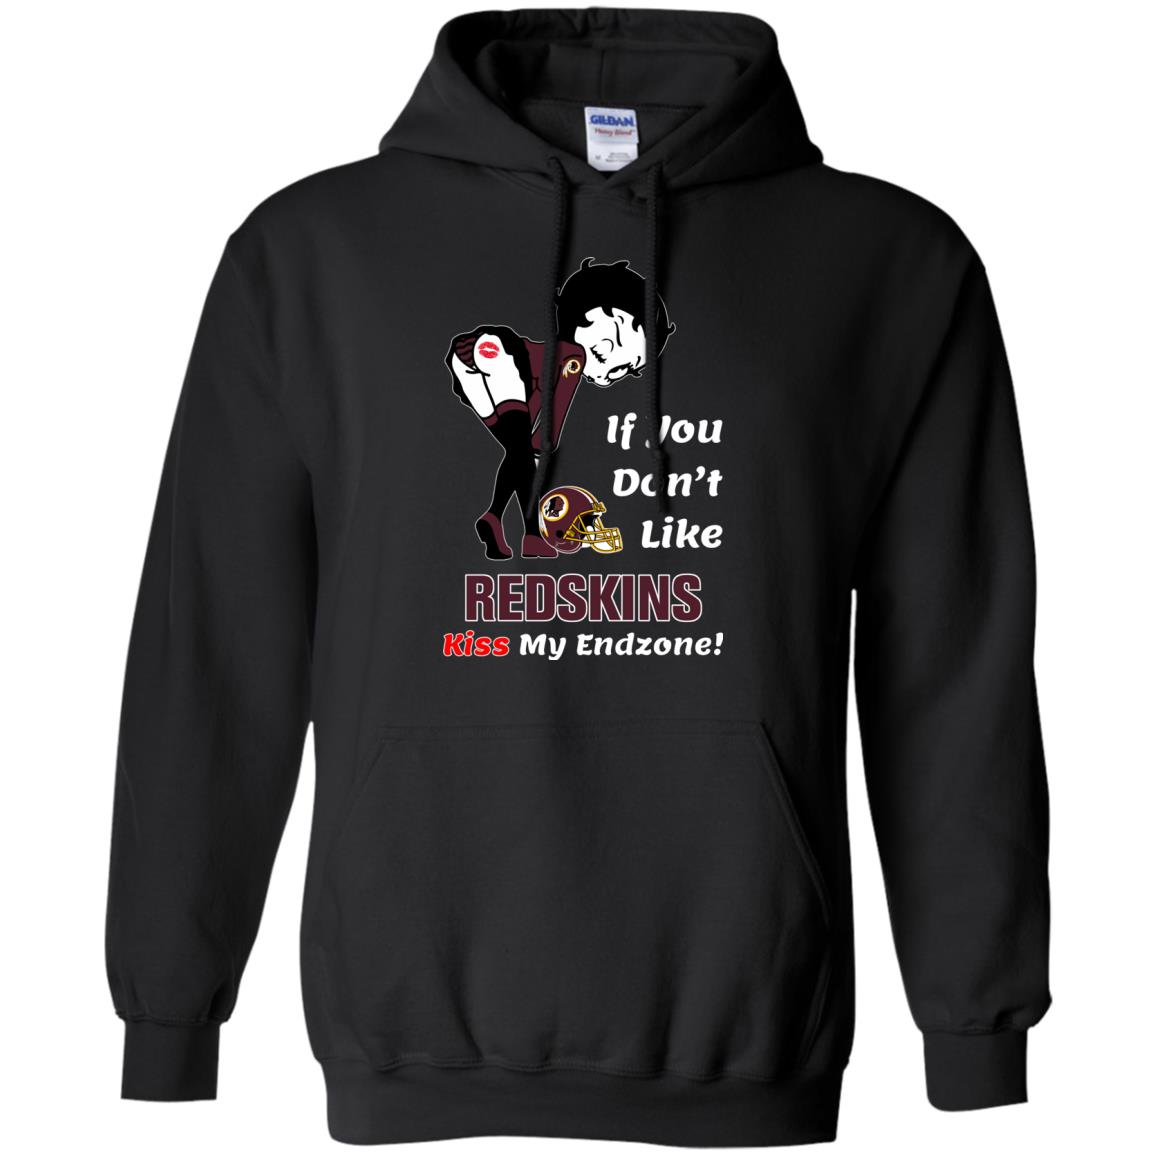 image 463px Betty Boop If you don't like Redskins kiss my endzone t shirt, hoodies, tank